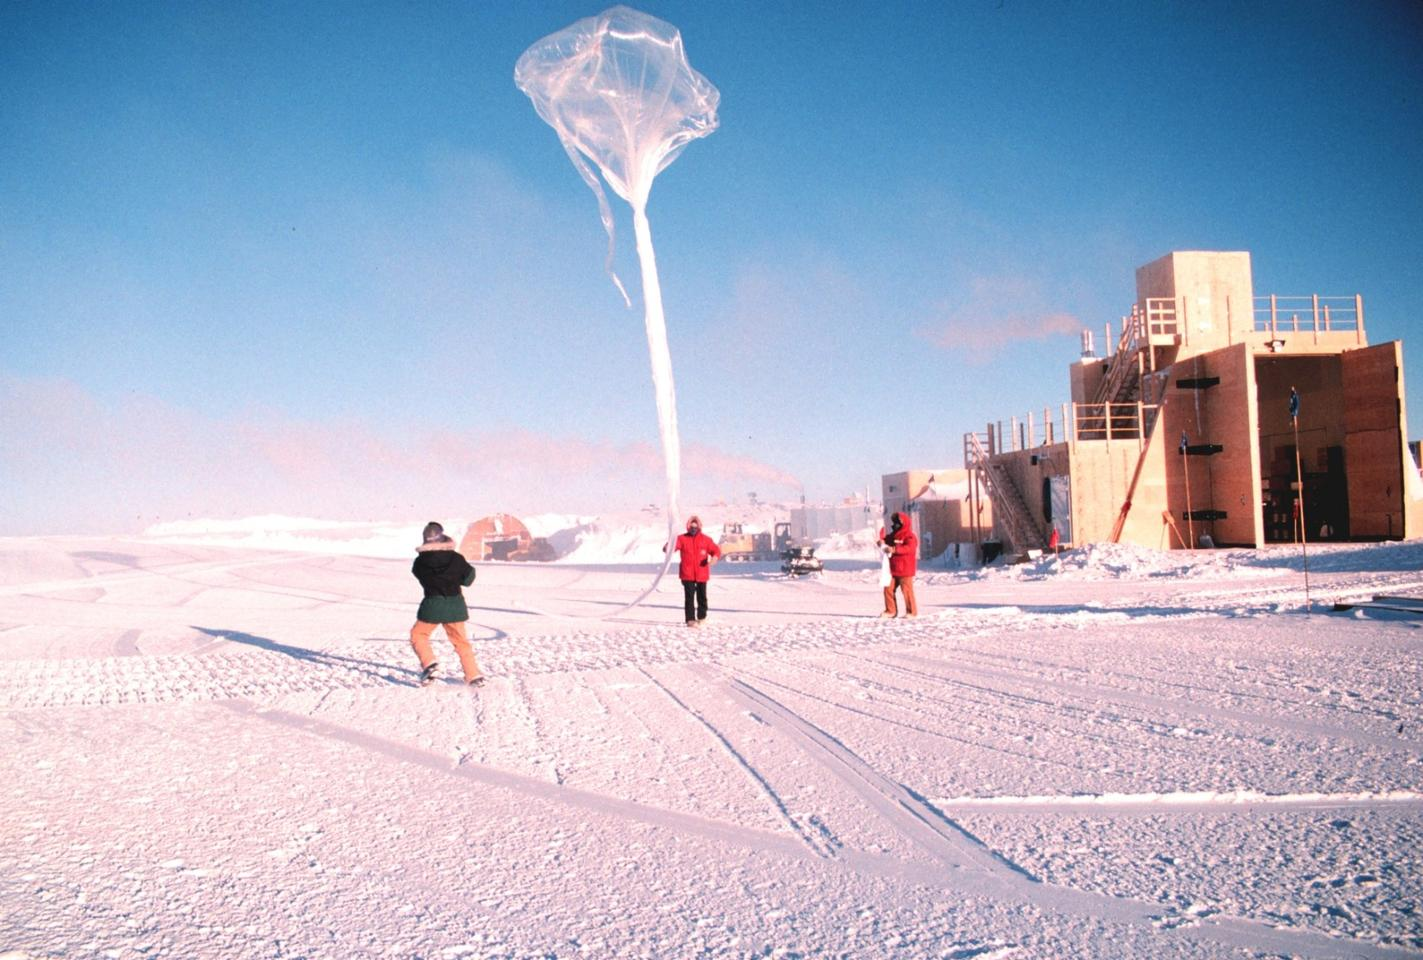 Scientists release a balloon to study the ozone layer